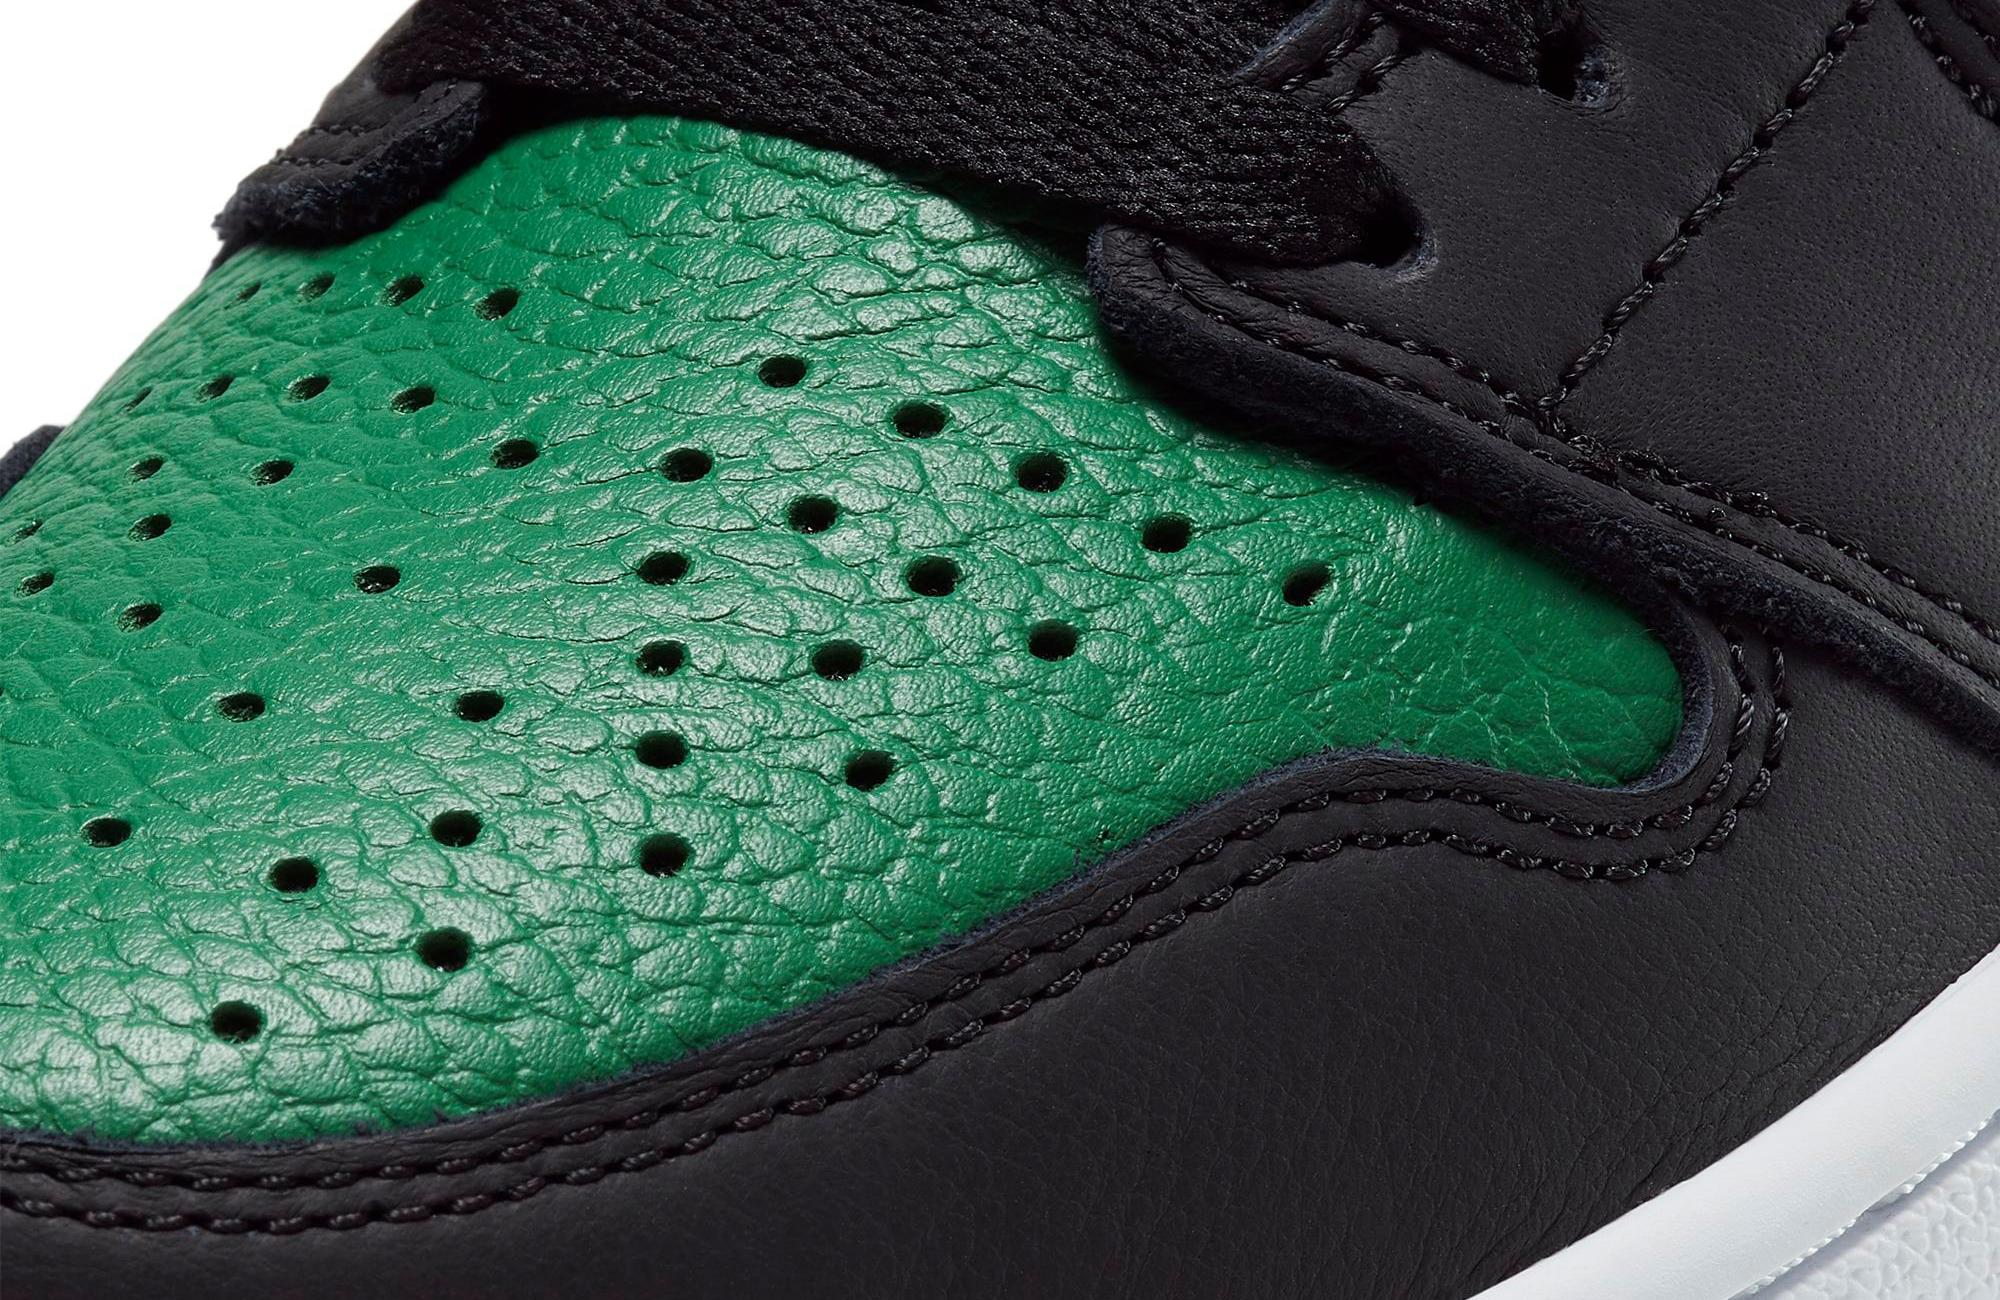 Toe box of Air Jordan 1 OG Pine Green